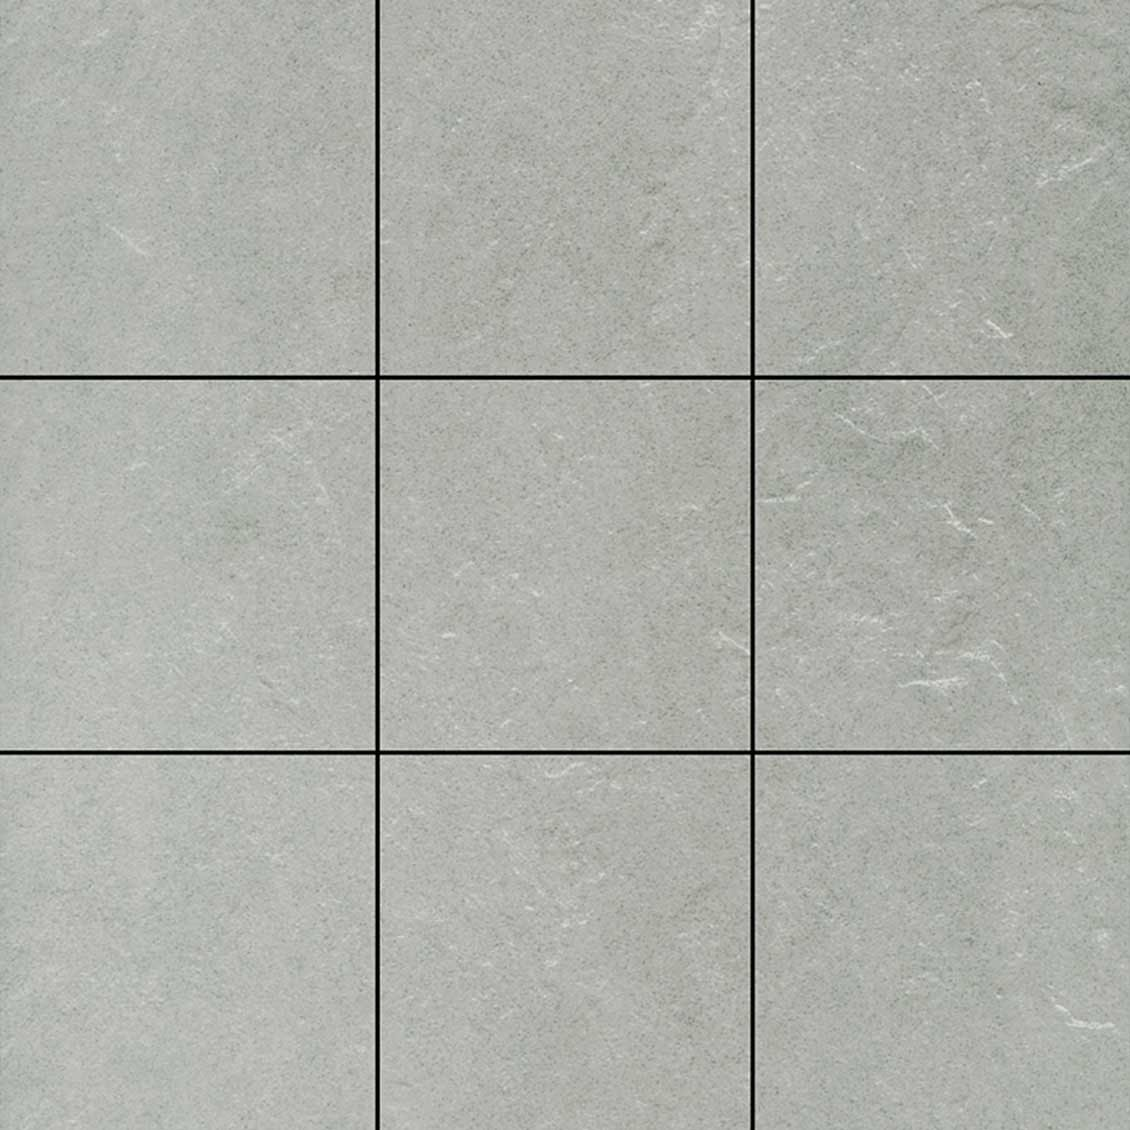 Carrelage design carrelage texture moderne design pour for Carrelage sol interieur 20x20